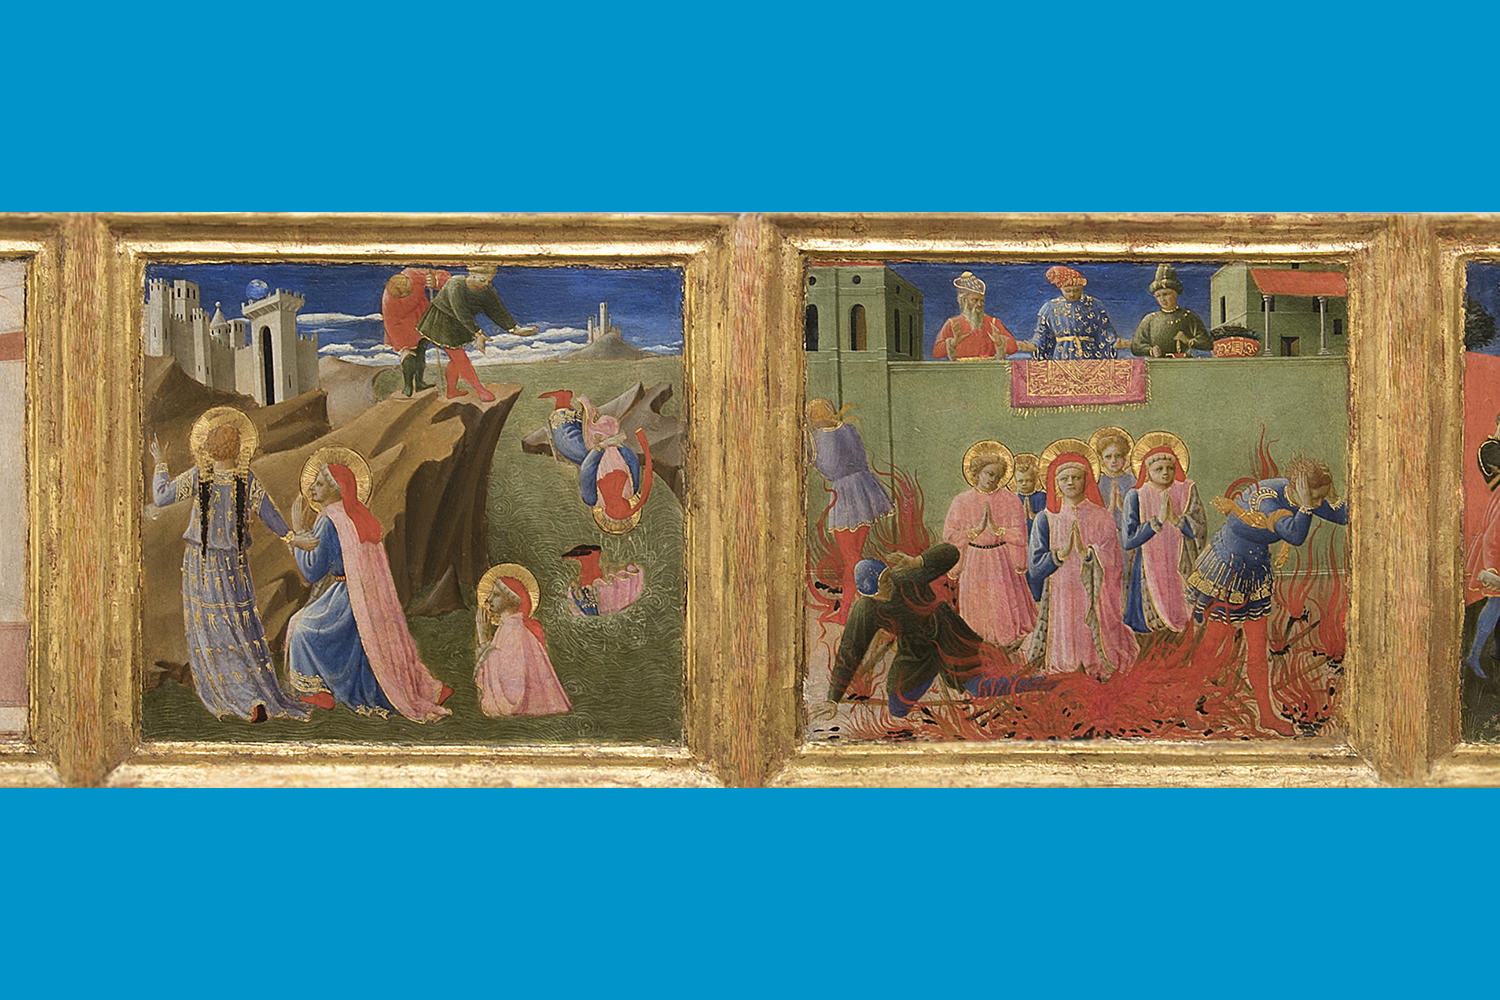 Fra Angelico (Italian, about 1400 - 1455), Predella from the Annalena altarpiece: Six Scenes from Life of Cosmas and Damian, about 1437-1440. Tempera on panel,20 x 117.5 cm (7 7/8 x 46 1/4 in.) Museo di San Marco, Florence – Polo Museale della Toscana